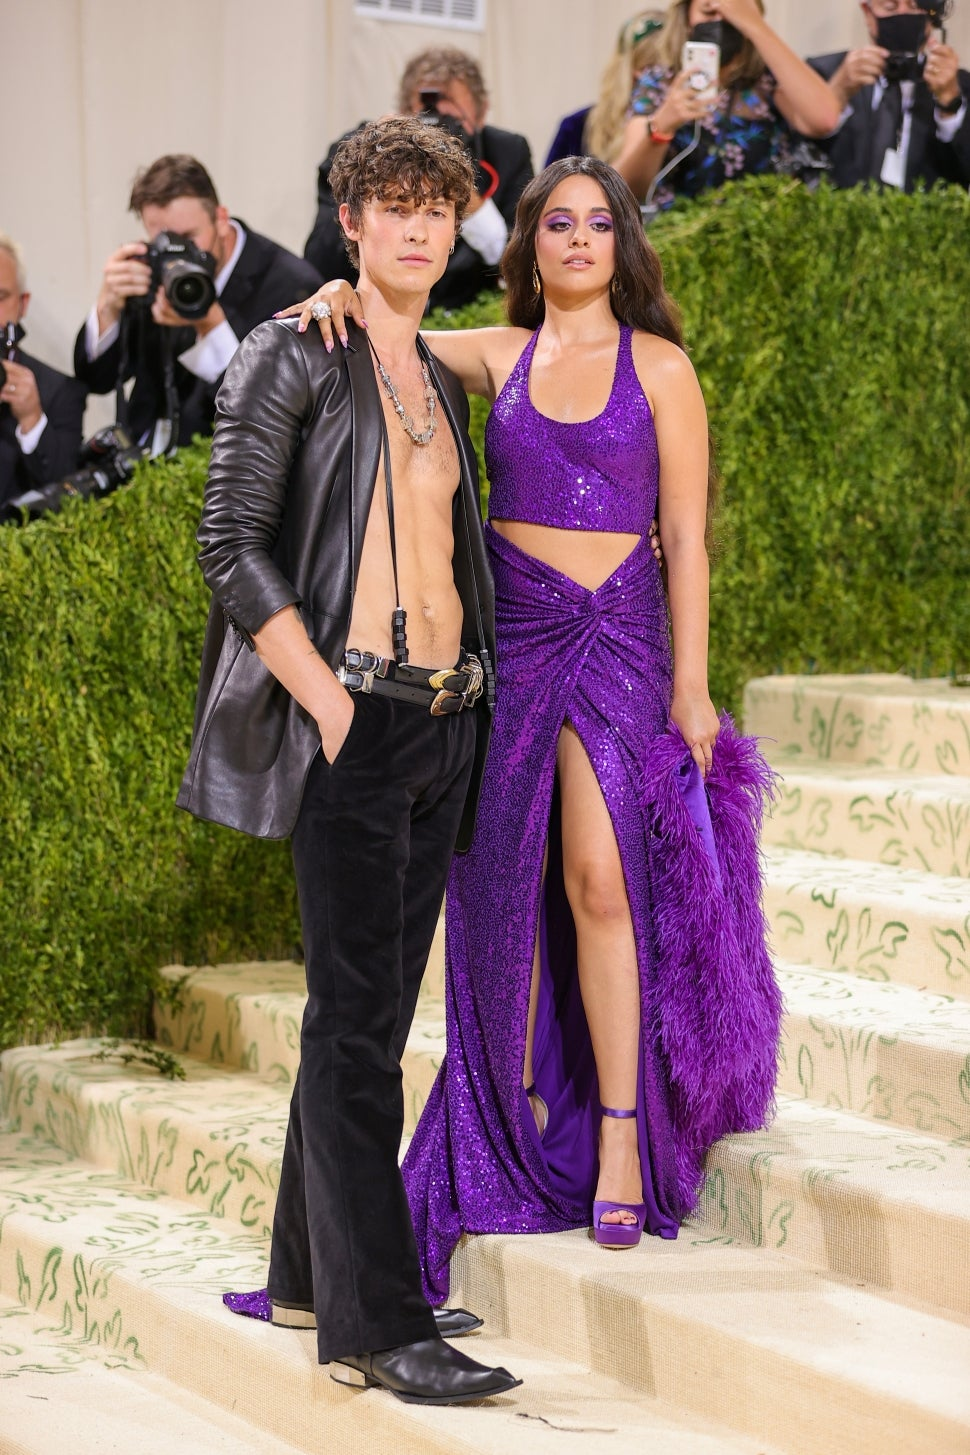 Camila Cabello and Shawn Mendes Look Rock Star Chic at 2021 Met Gala | Entertainment Tonight